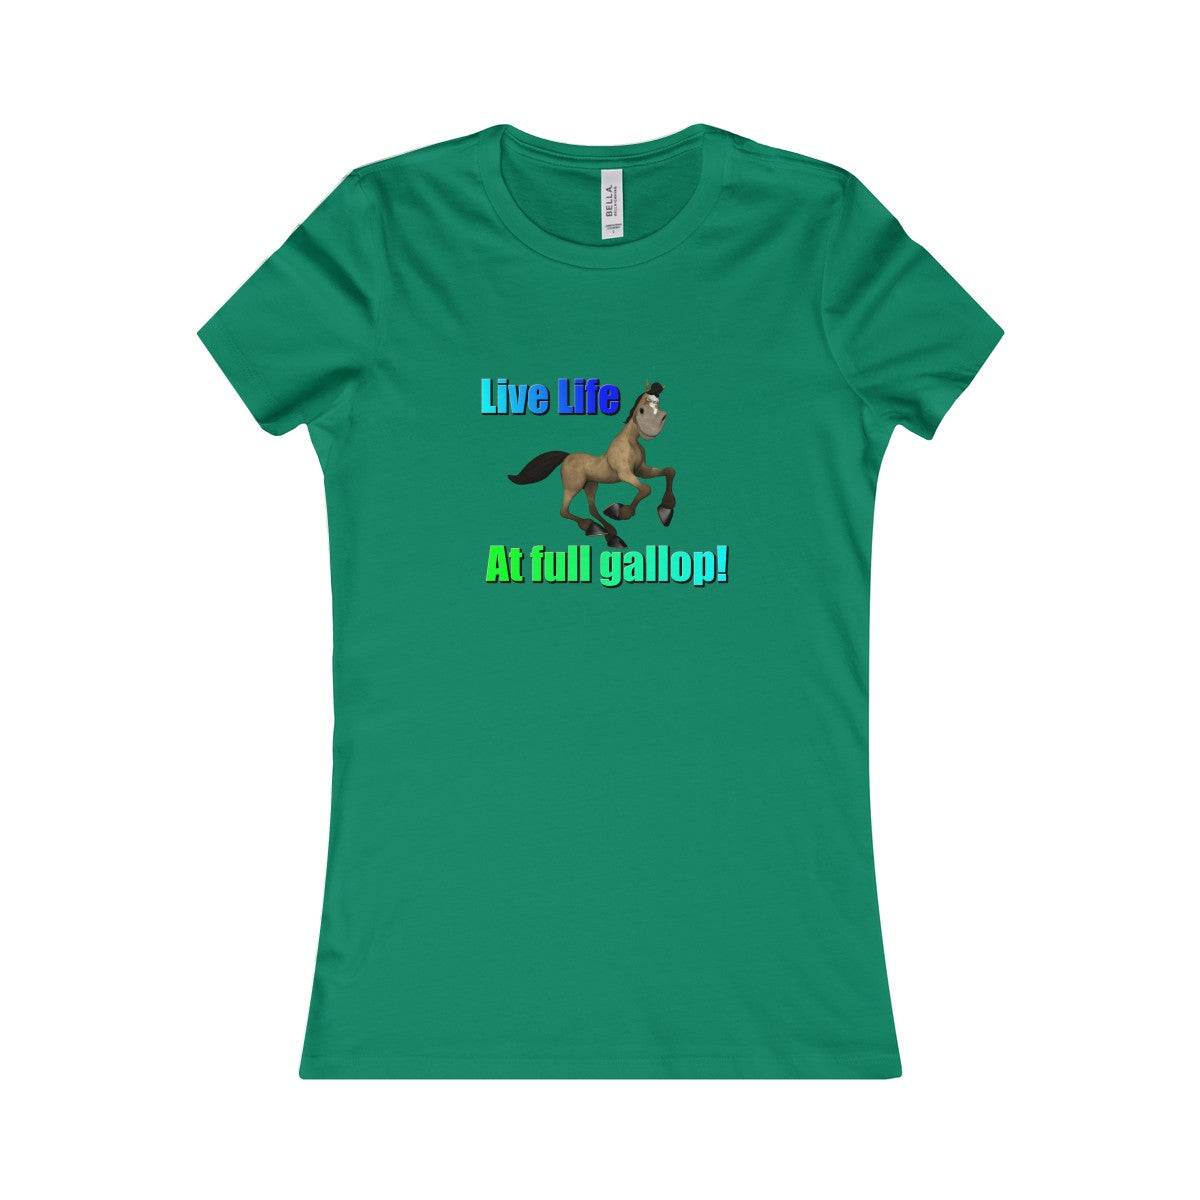 Life Women's Favorite Tee - The Horse Barn